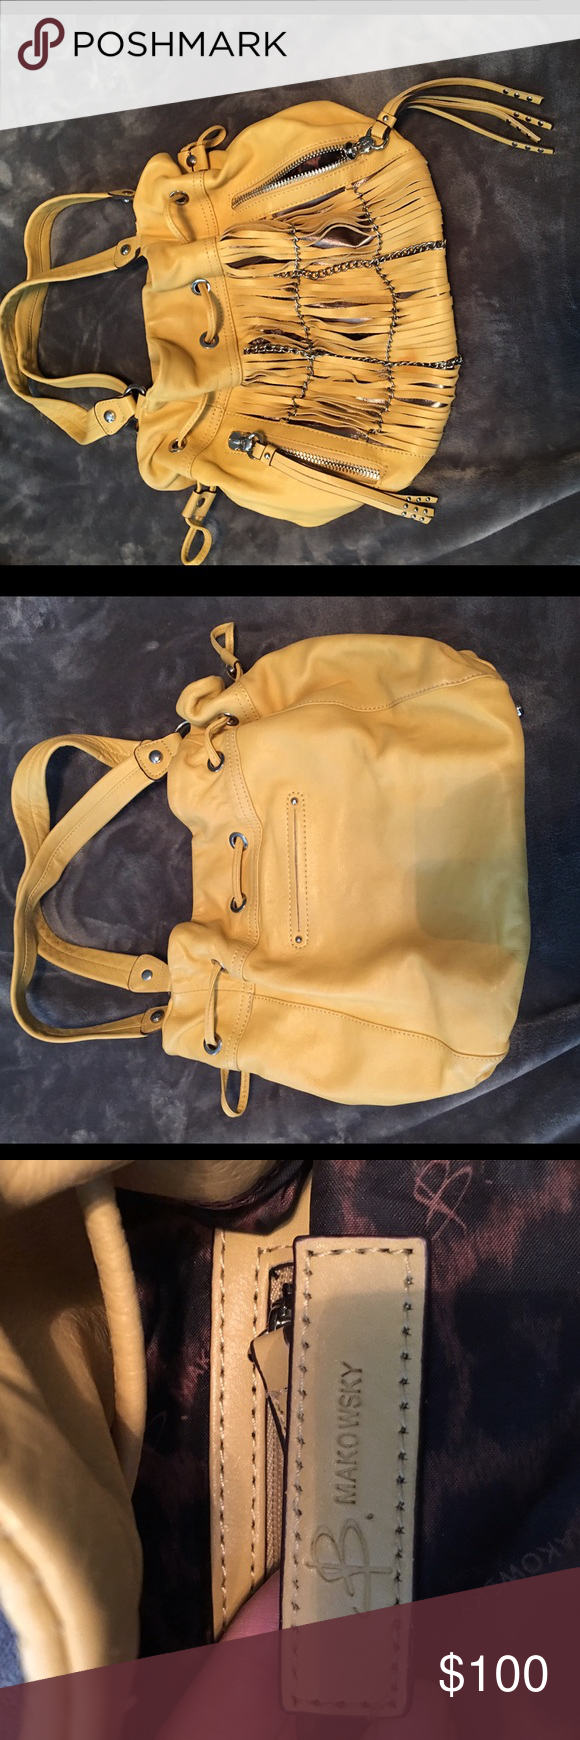 B. Makowsky yellow leather bag Cute cutout and metal details. In like new condition, only carried a few times. b. makowsky Bags Shoulder Bags